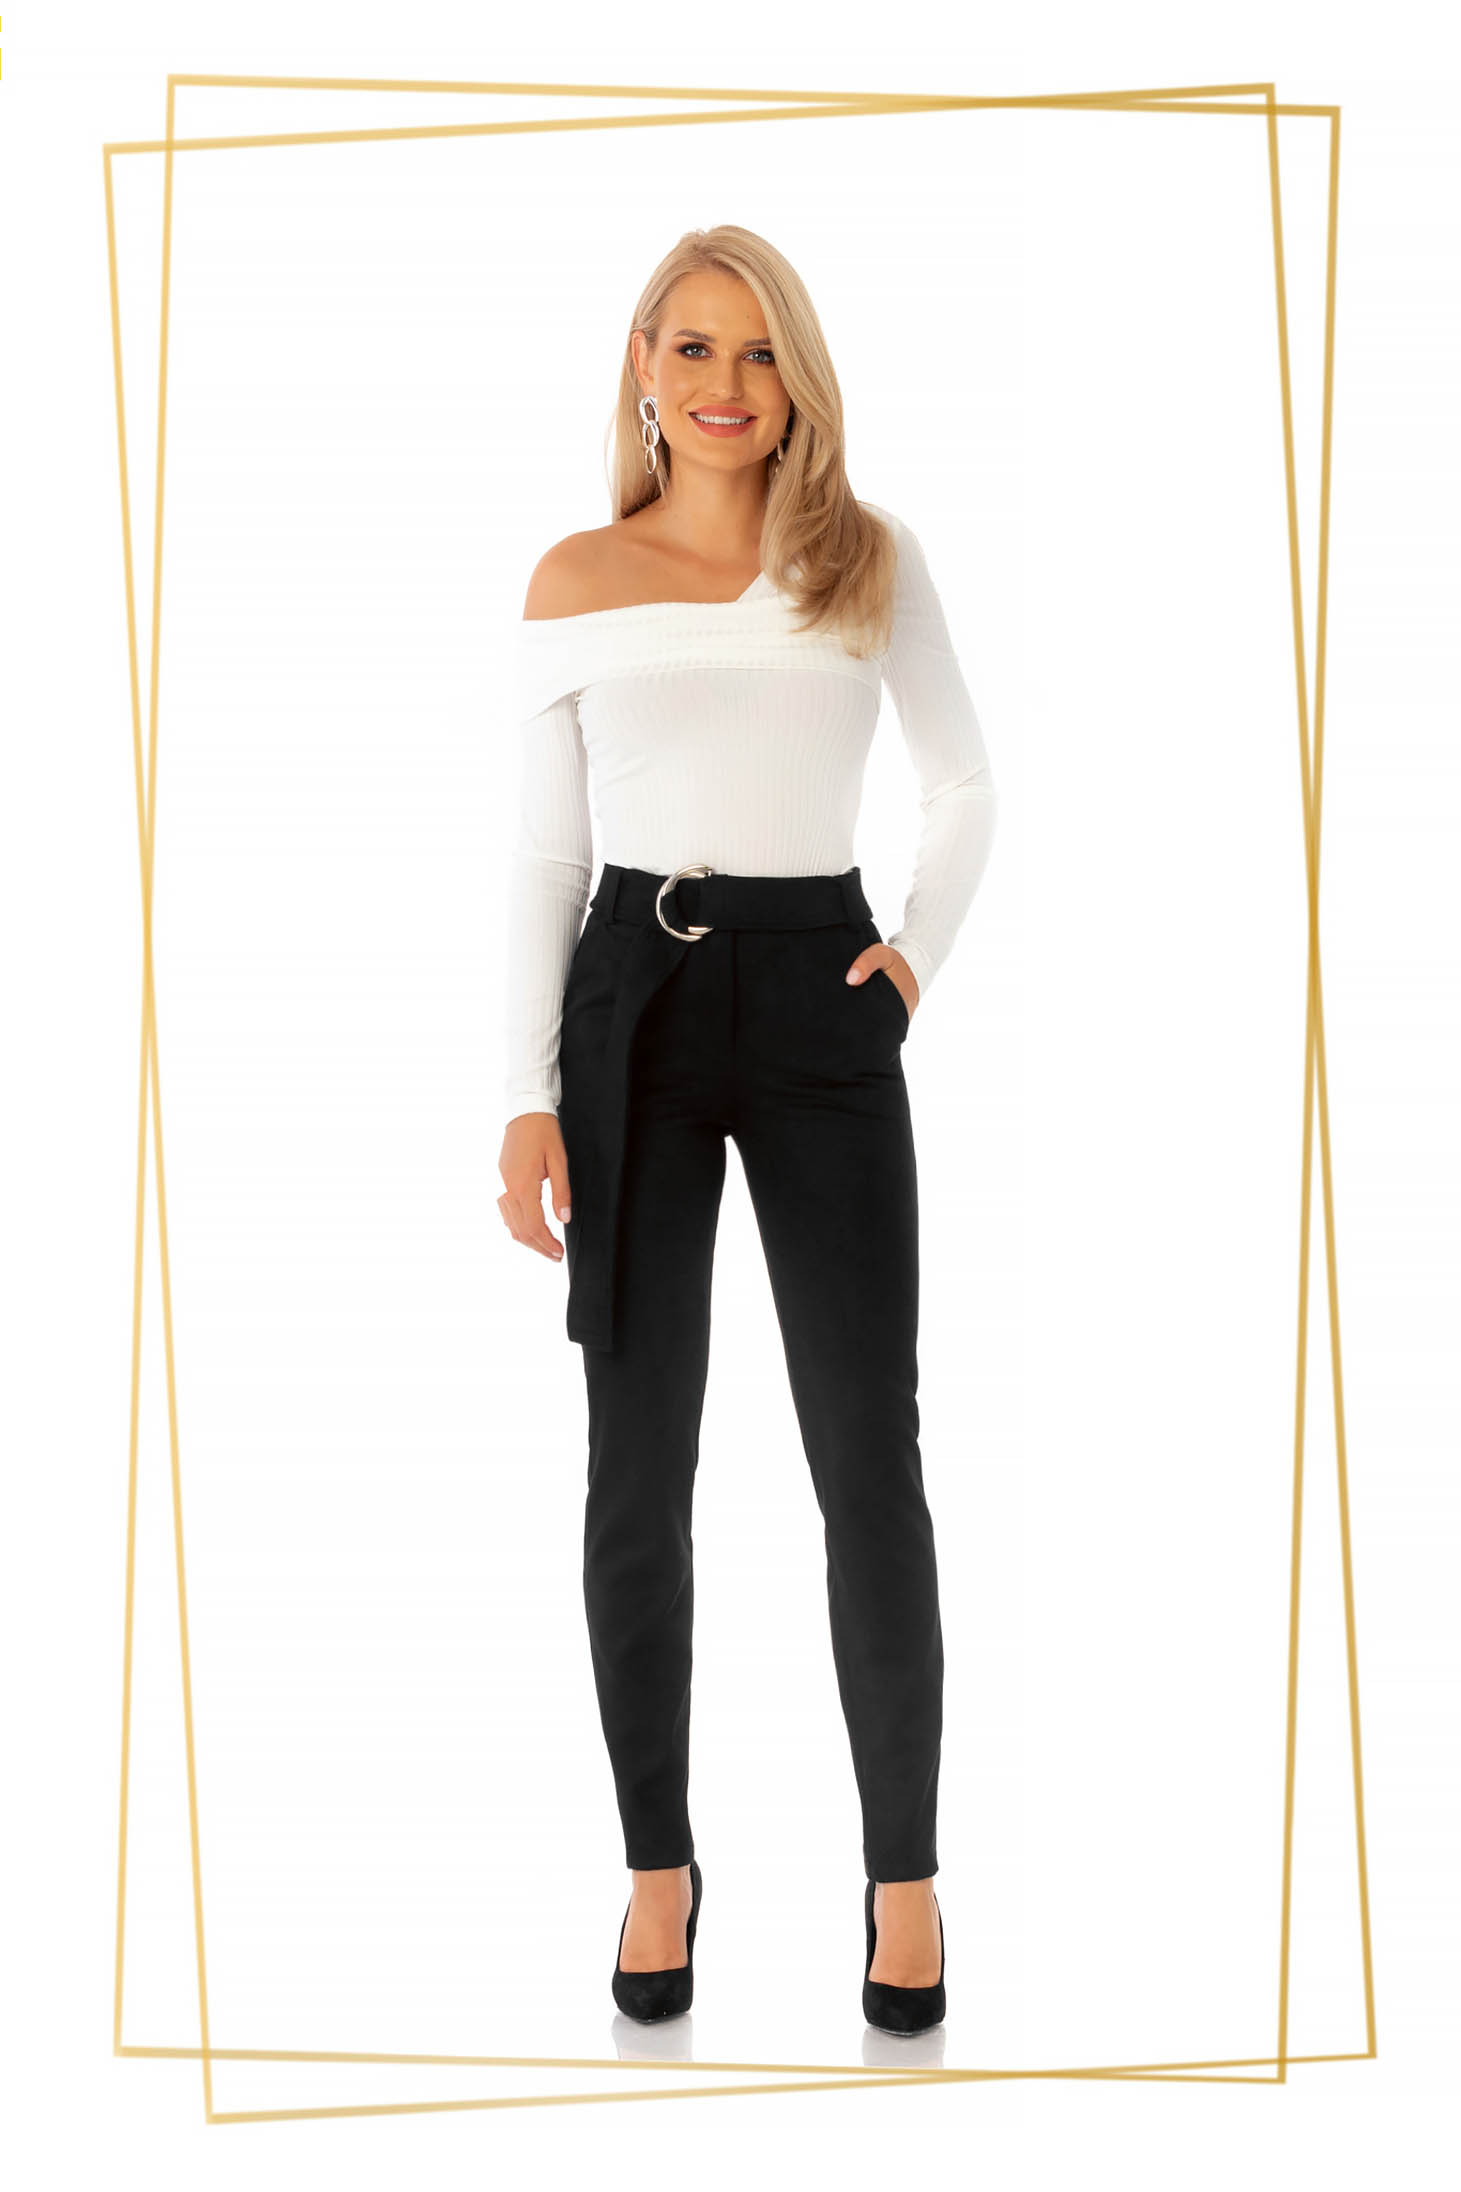 Elegant black conical trousers high waisted slightly elastic fabric accessorized with tied waistband